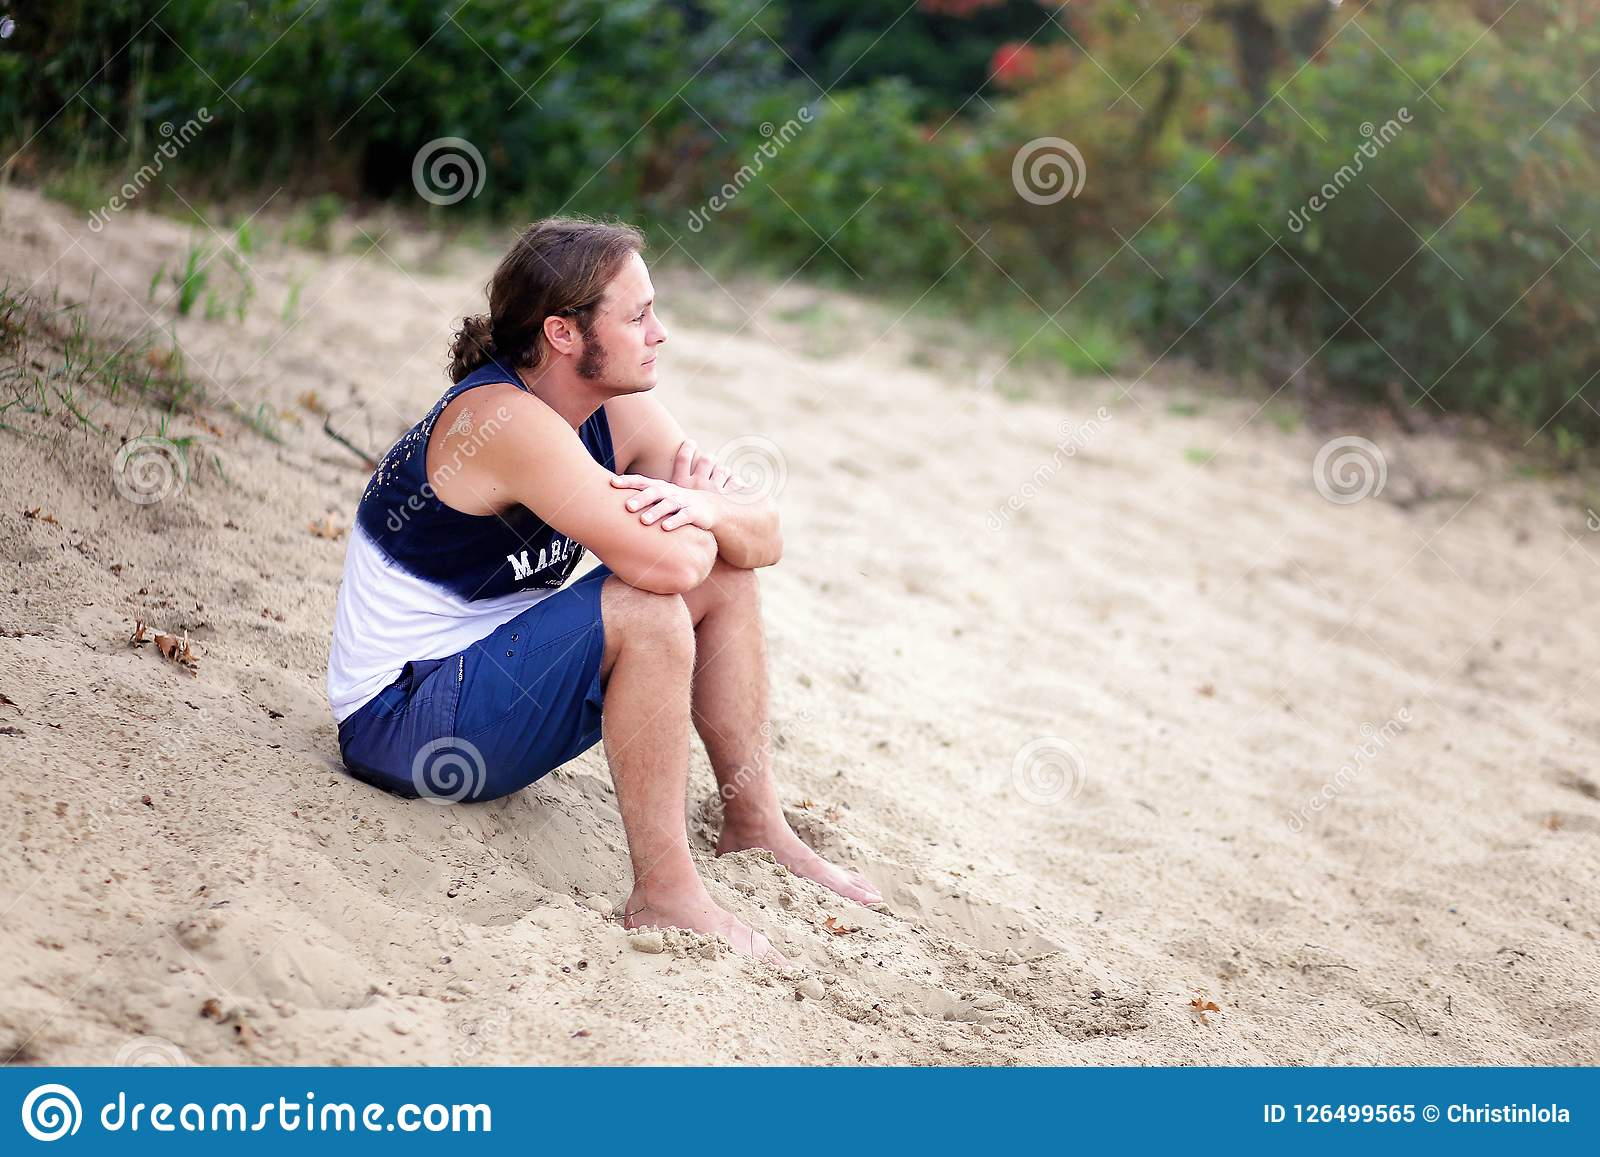 Long Haired Barefoot Man Sitting on the Beach Looking Out Over t